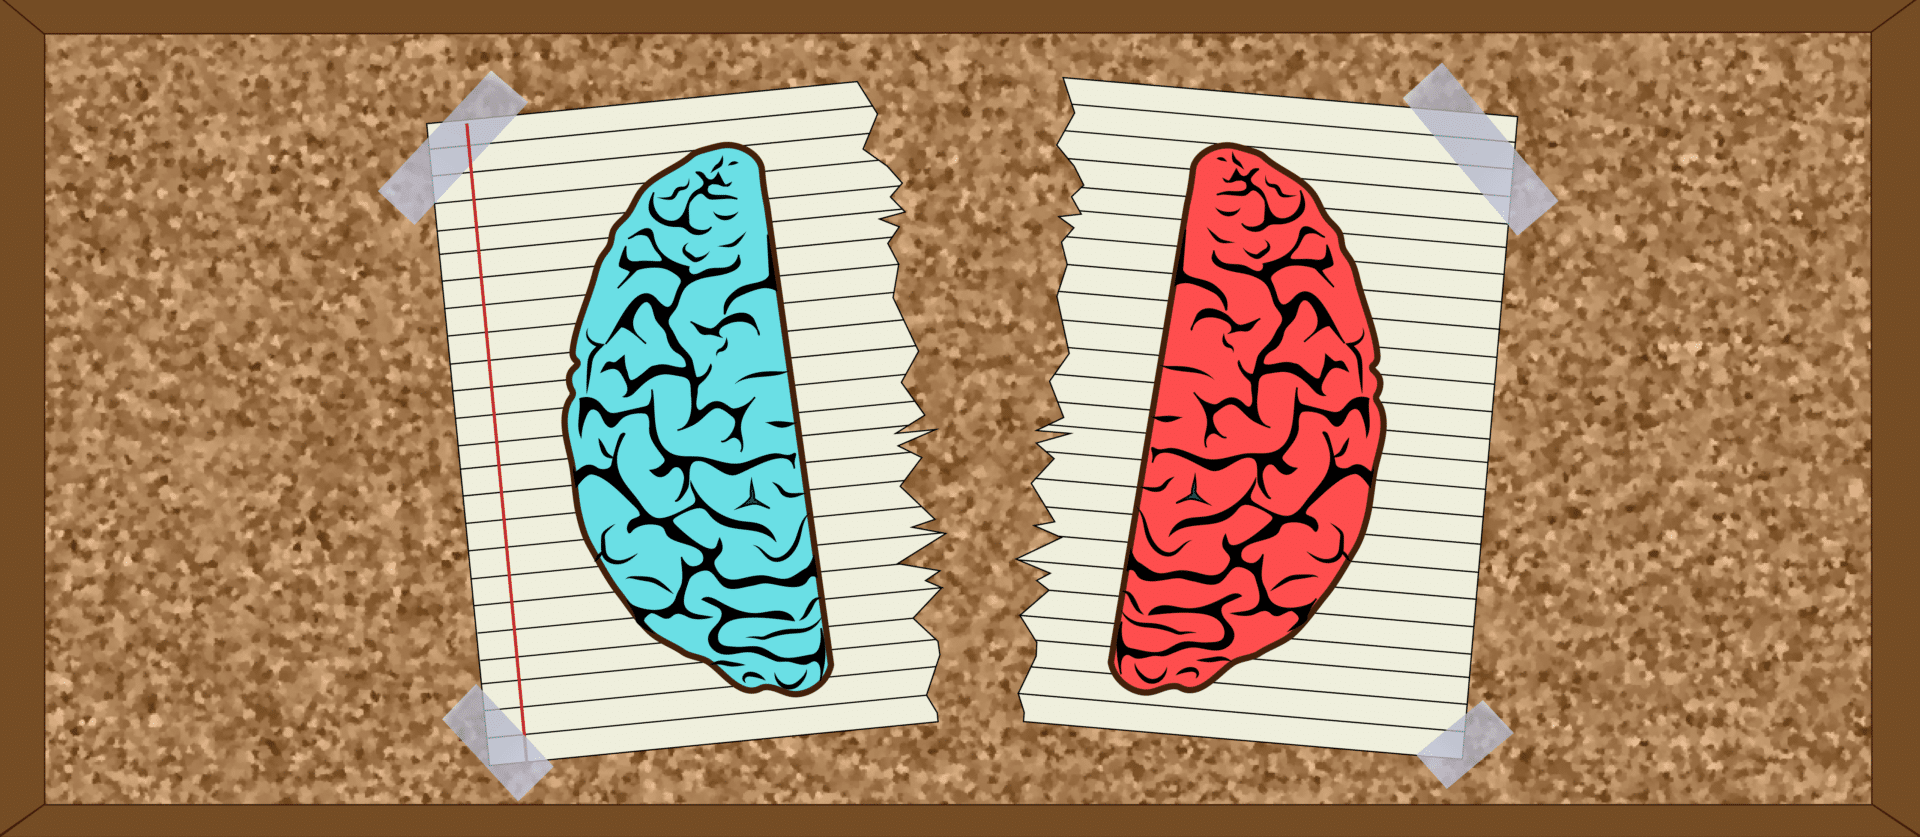 A Picture of the Left Brain and Right Brain Split Symbolizing The Viewpoint Diversity Movement's History